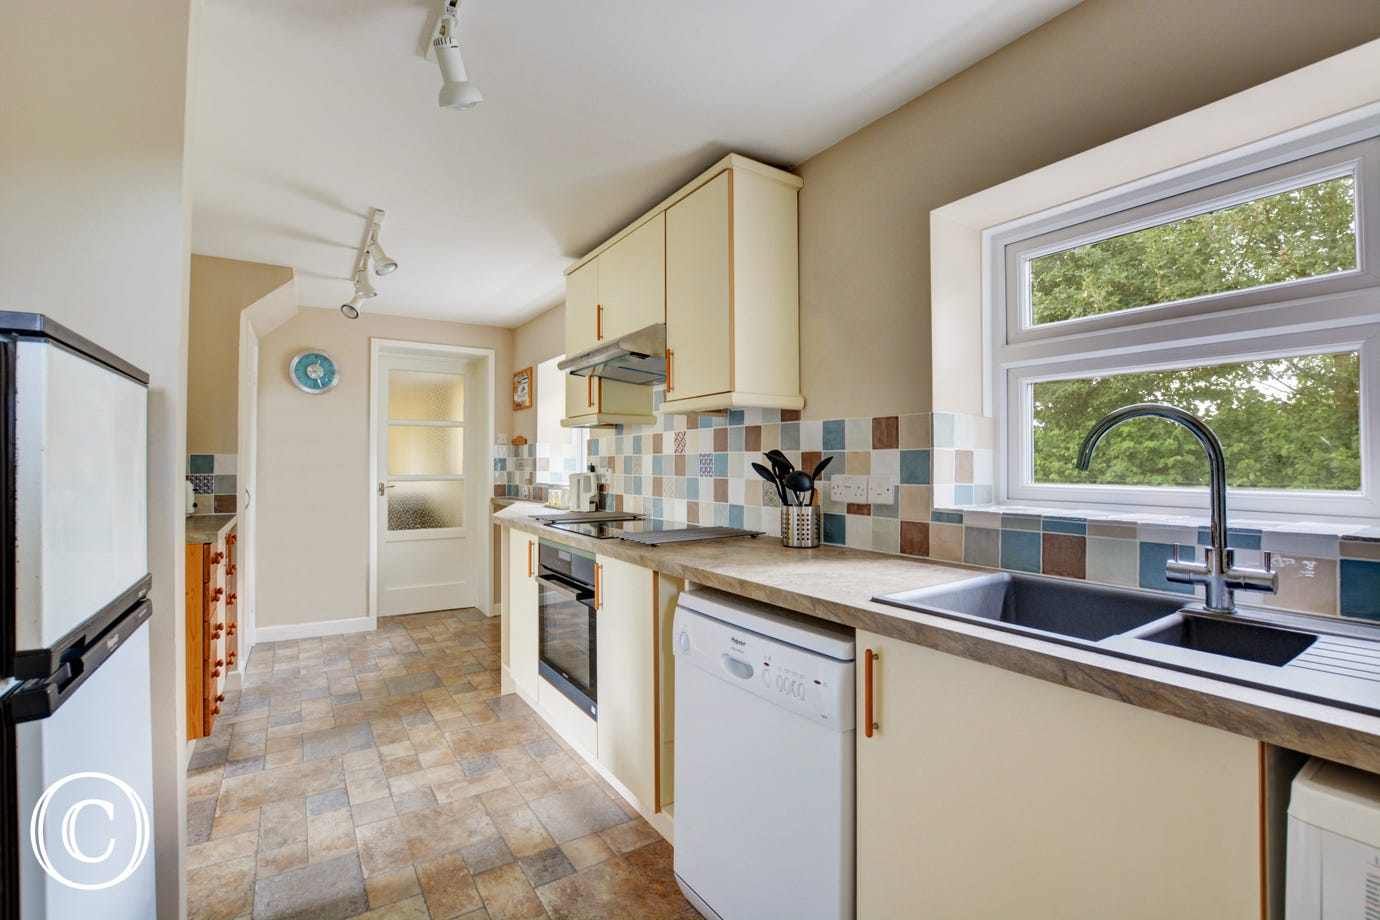 Bright and colourful kitchen with lots of storage and workspace and a downstairs cloakroom